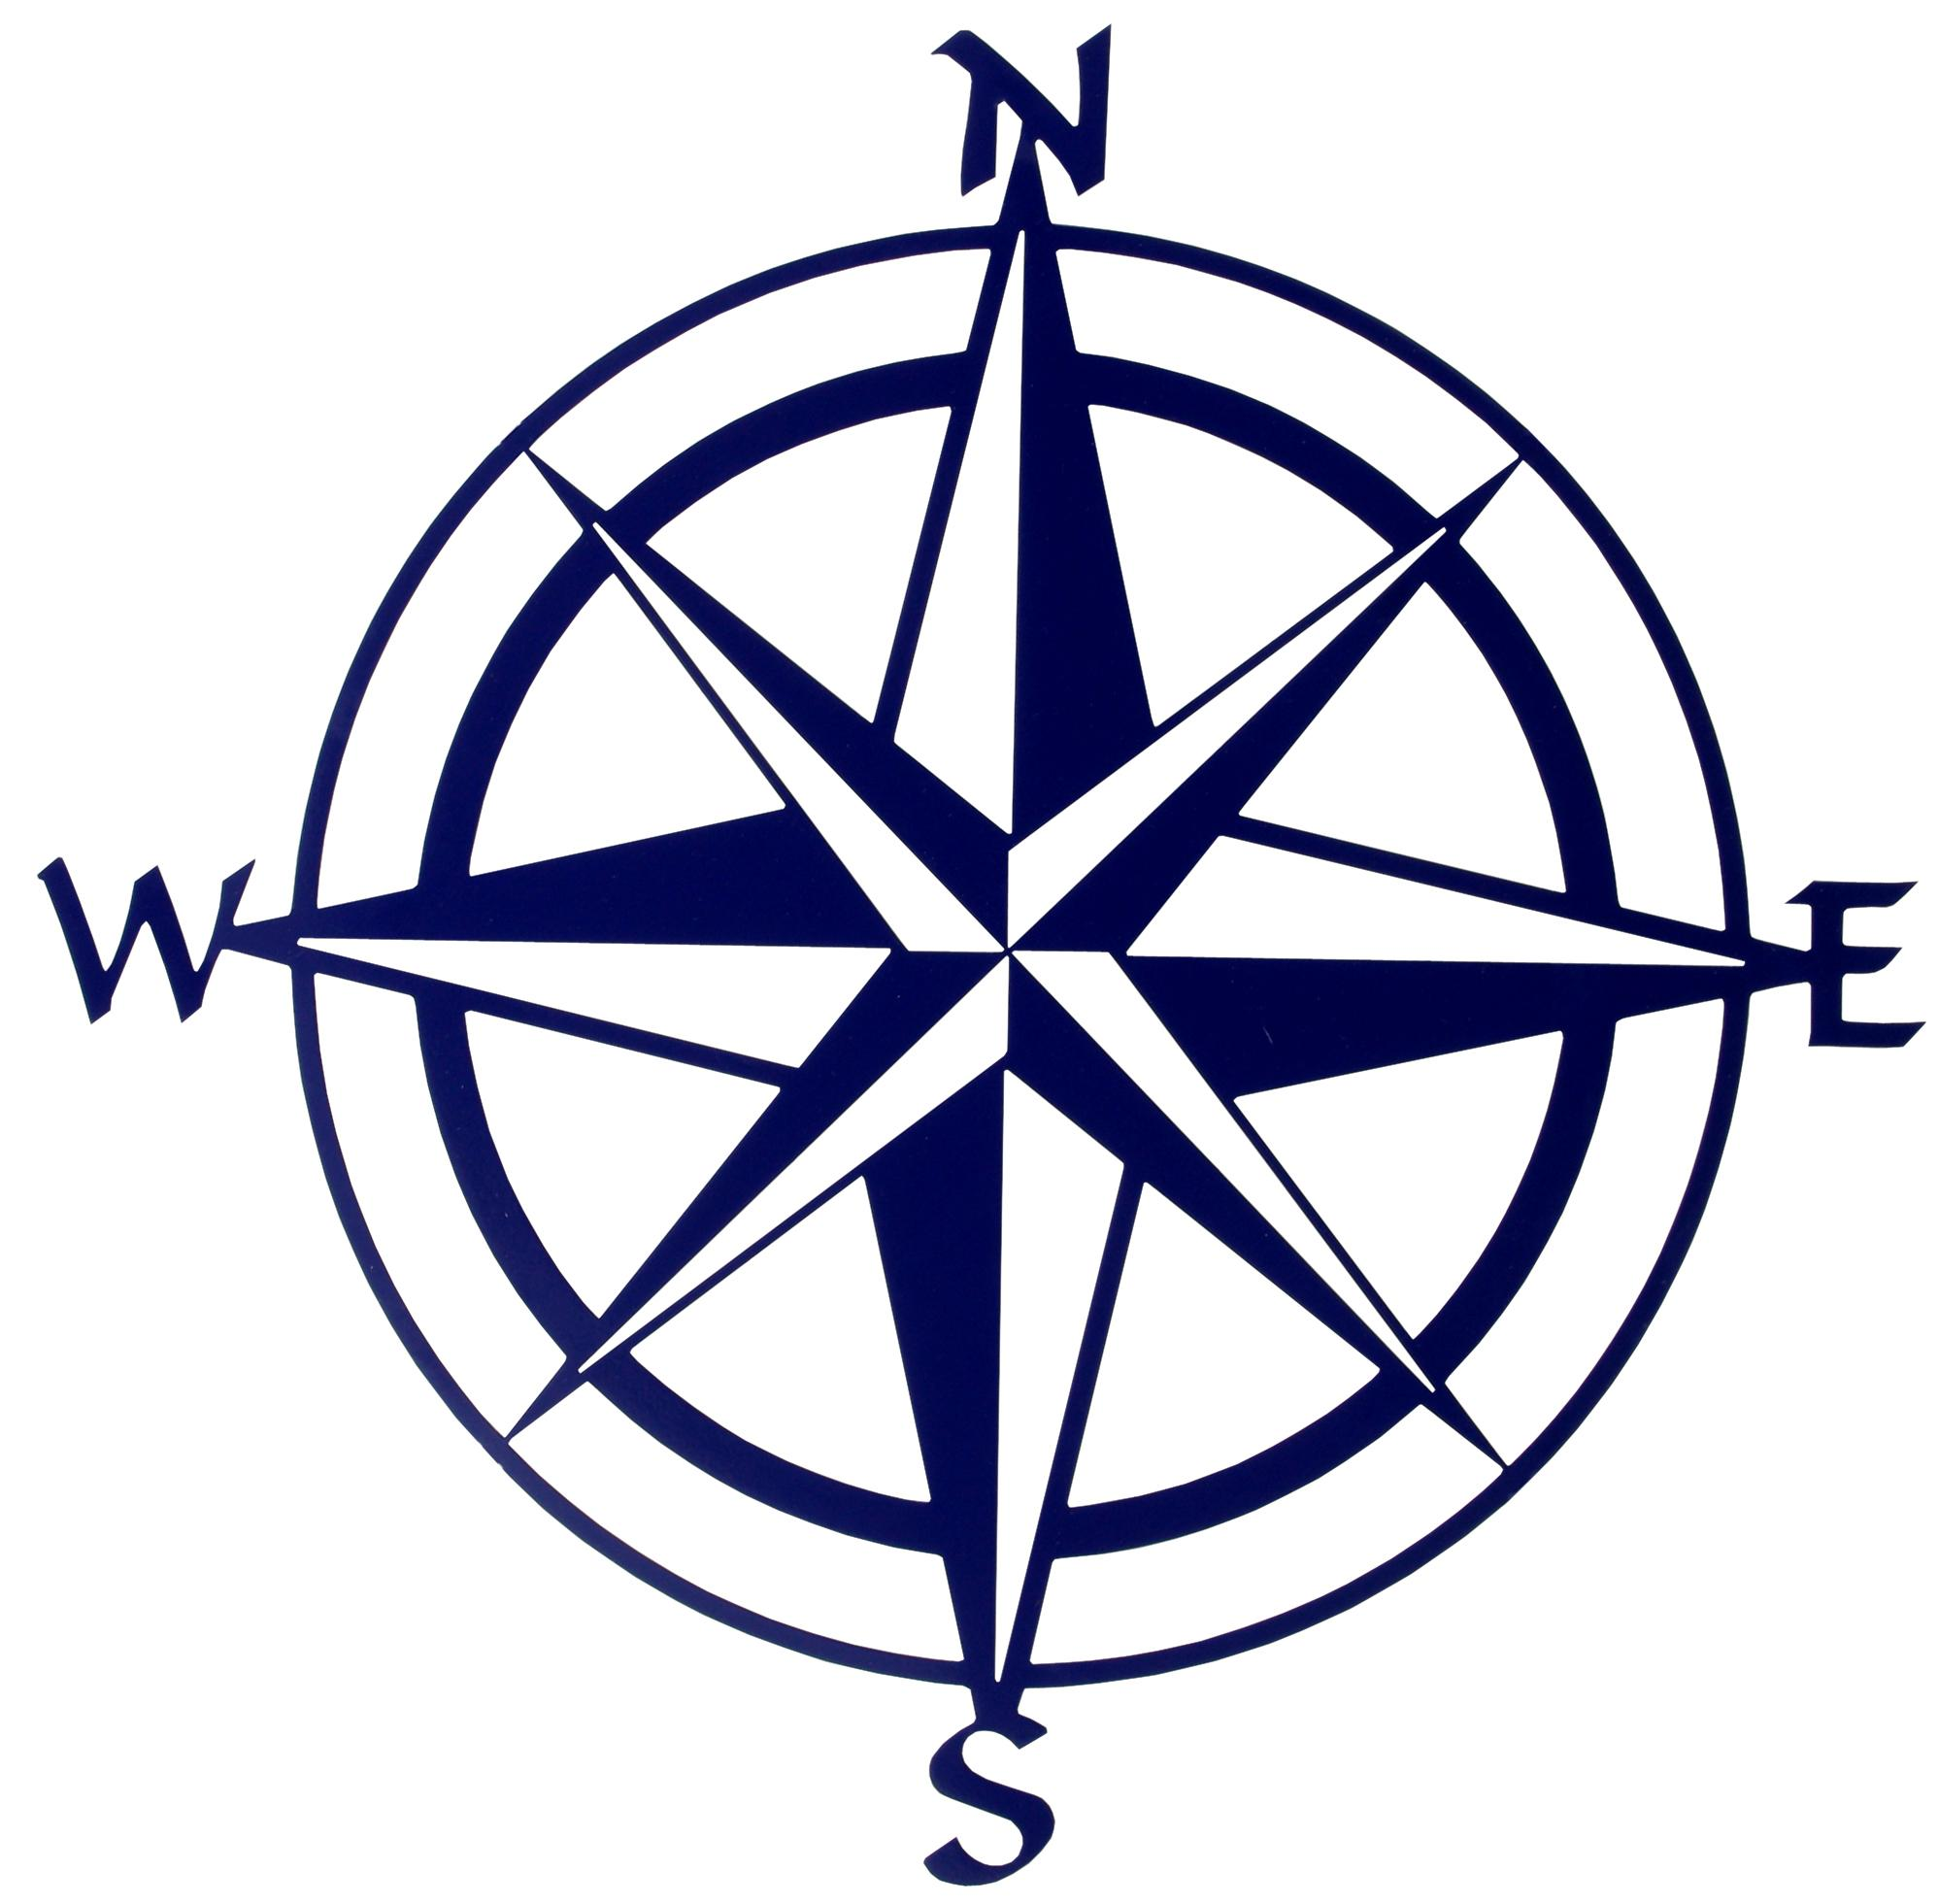 Free Compass Transparent Png, Download Free Clip Art, Free.